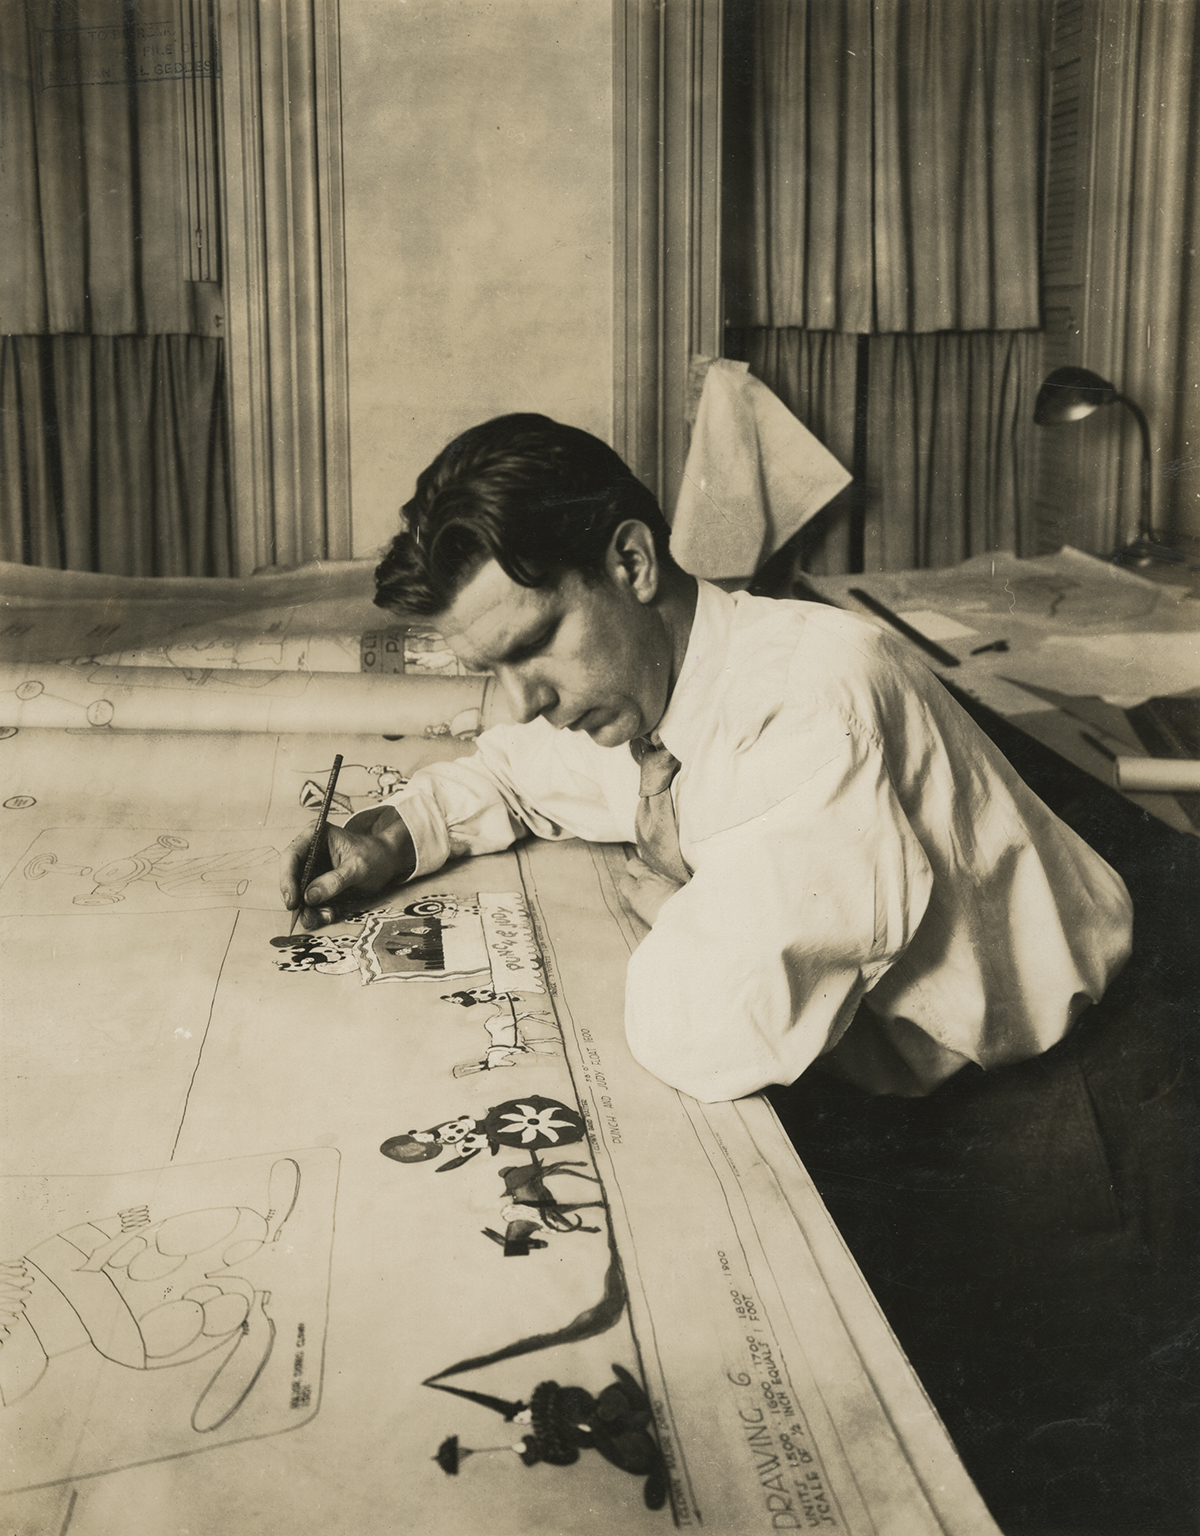 Norman Bel Geddes draws a concept for a Macy's Thanksgiving Day parade float, ca. 1926. Unidentified photographer.